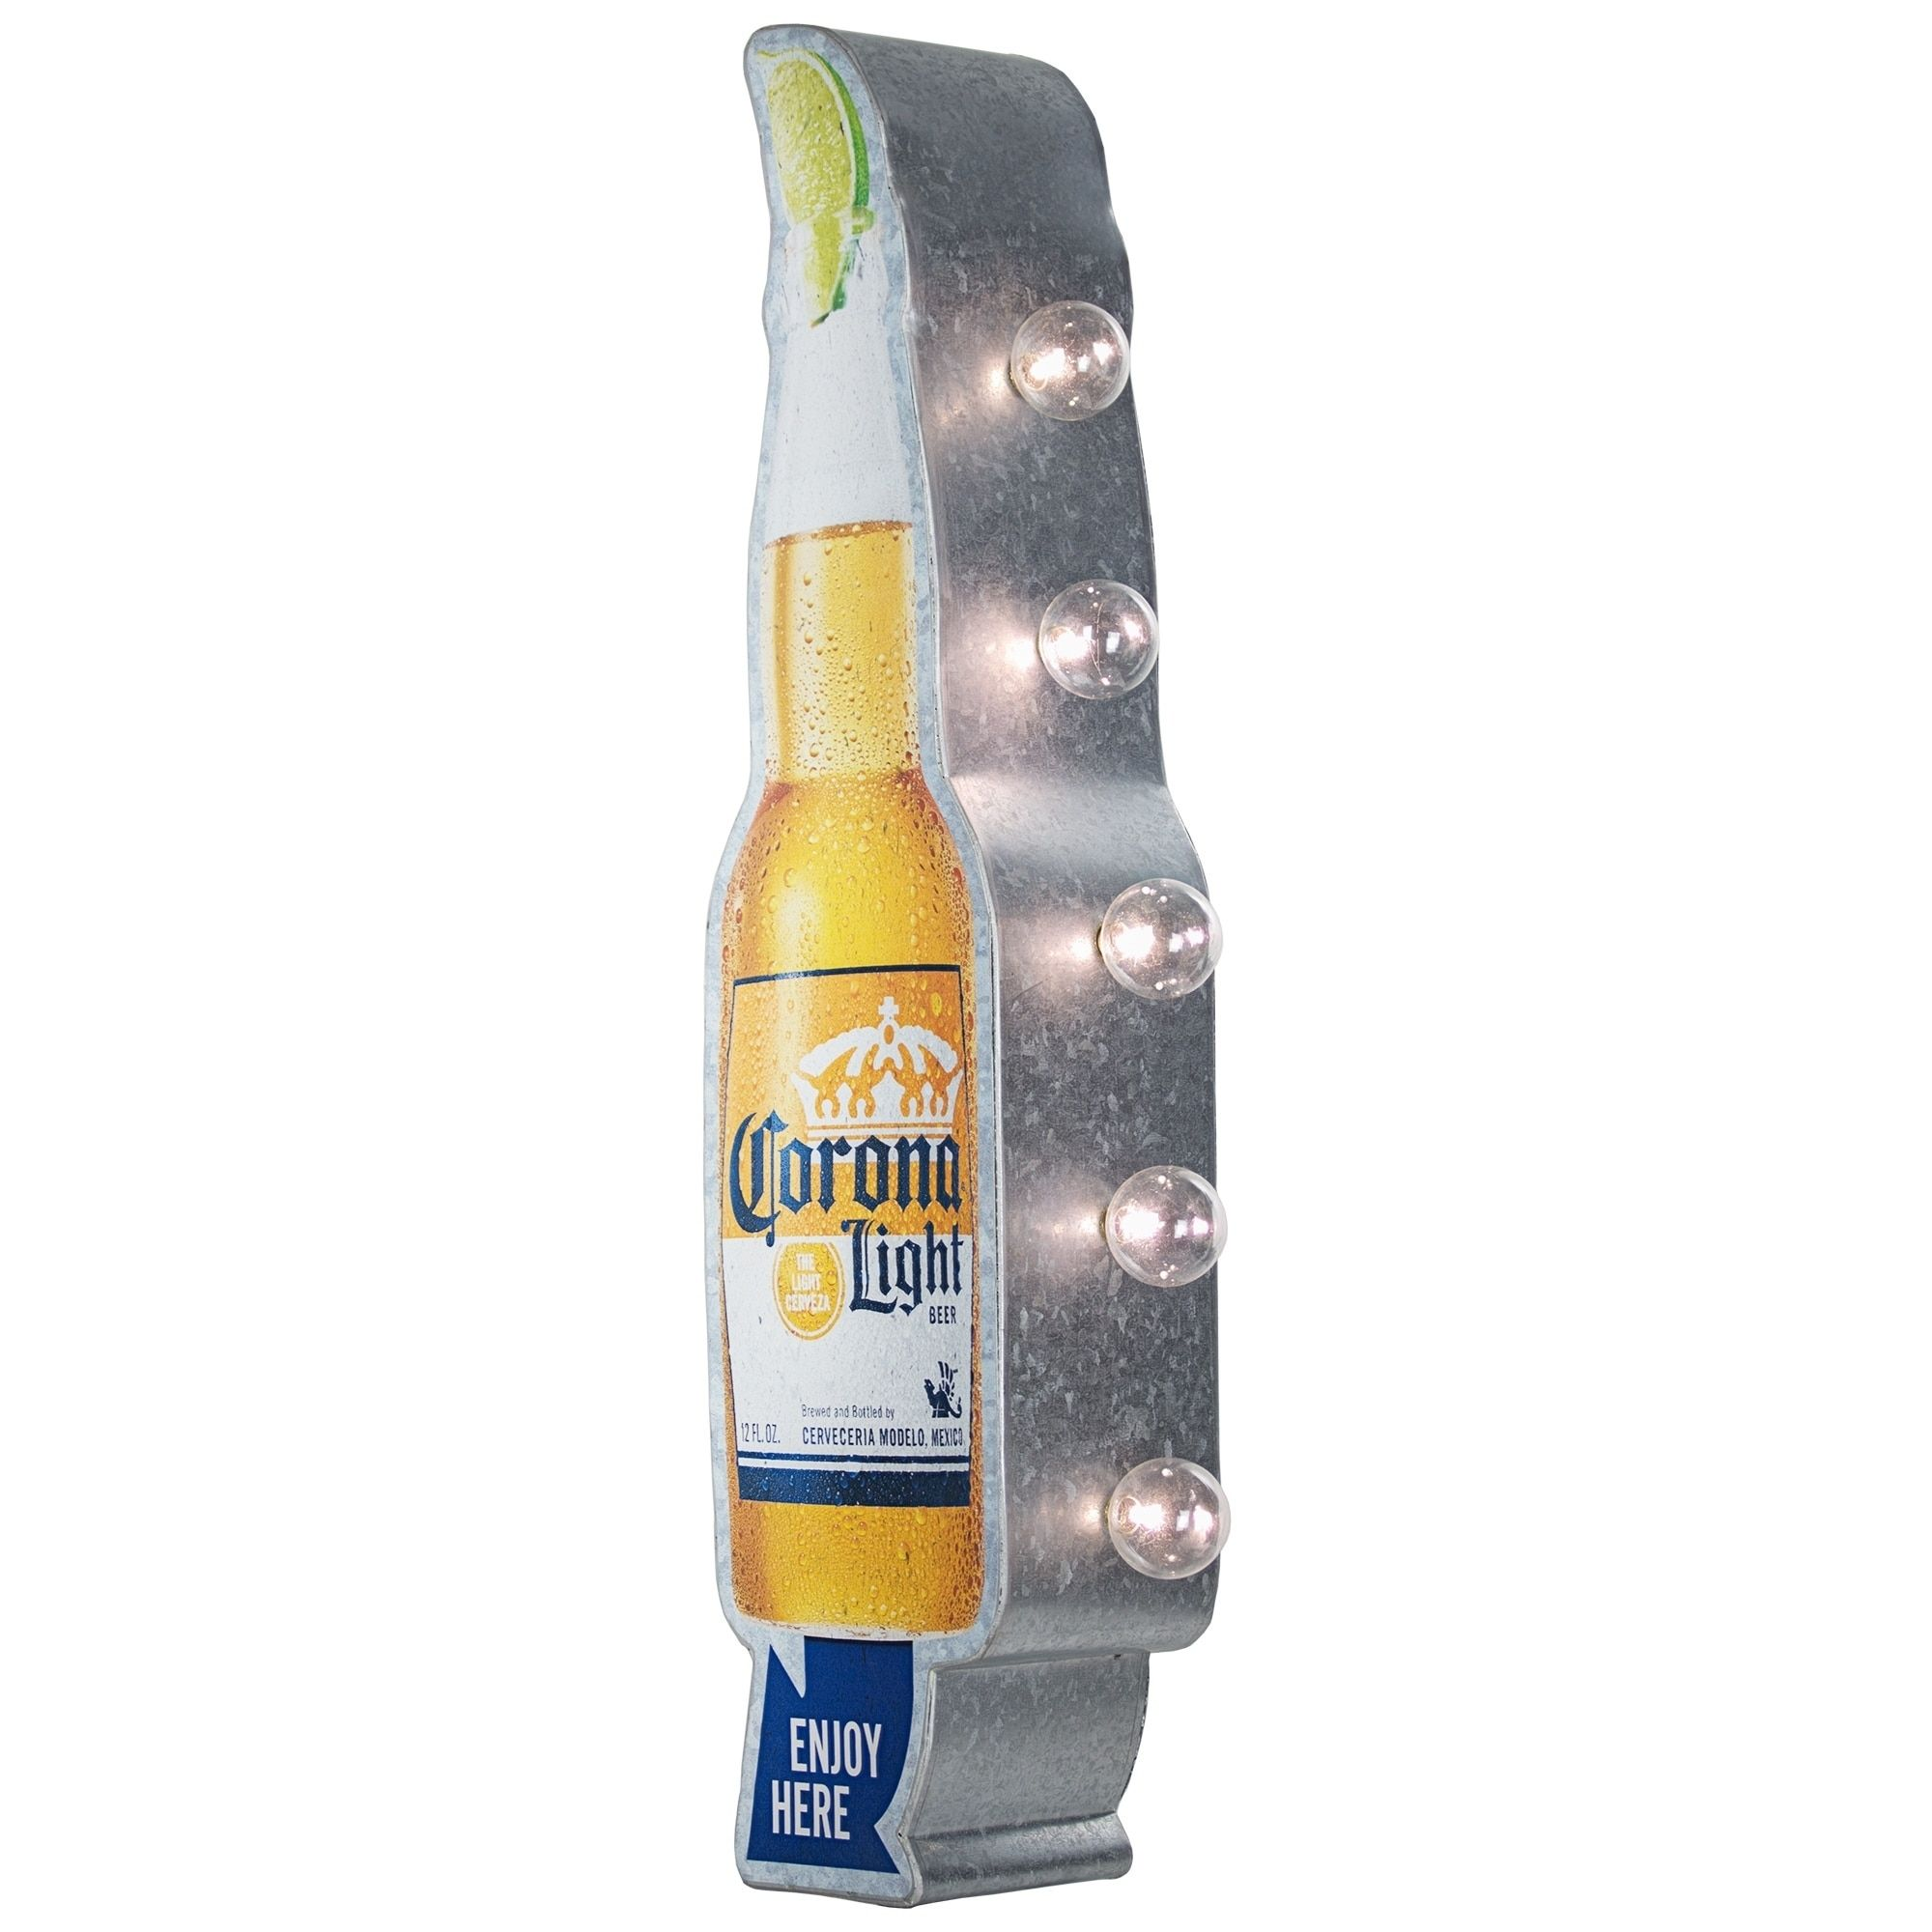 Officially Licensed Vintage Corona Light Sold Here Led Sign Yellow Metal Corona Light Cool Wall Decor Vintage Marquee Sign